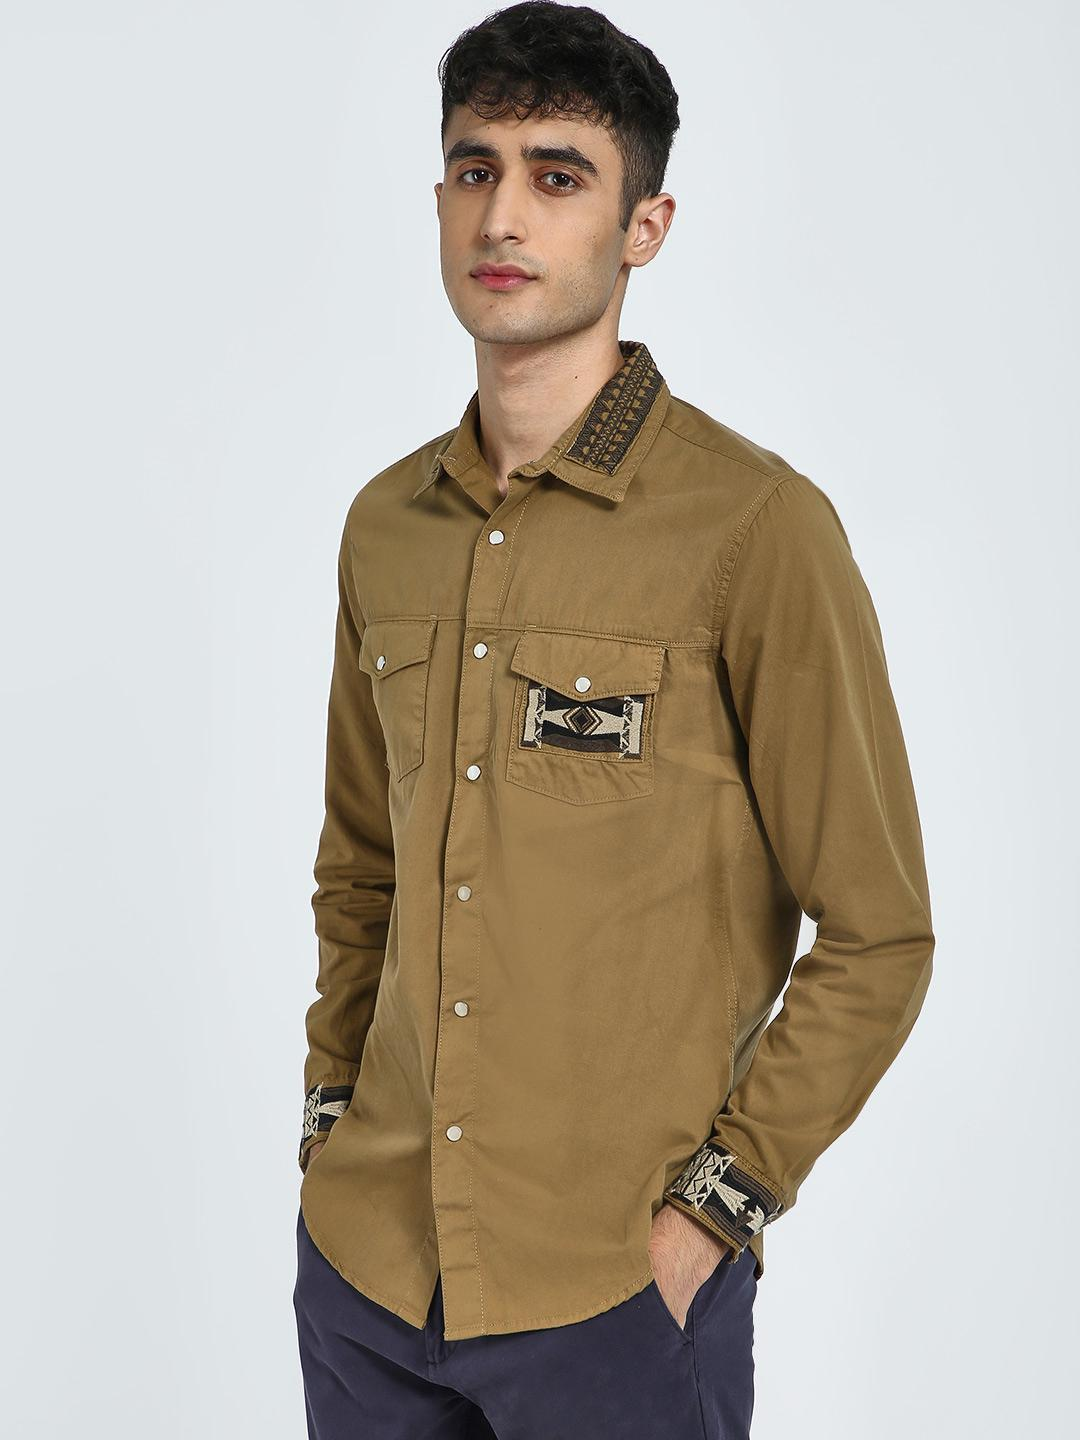 Blue Saint Brown Embroidered Patch Pocket Shirt 1